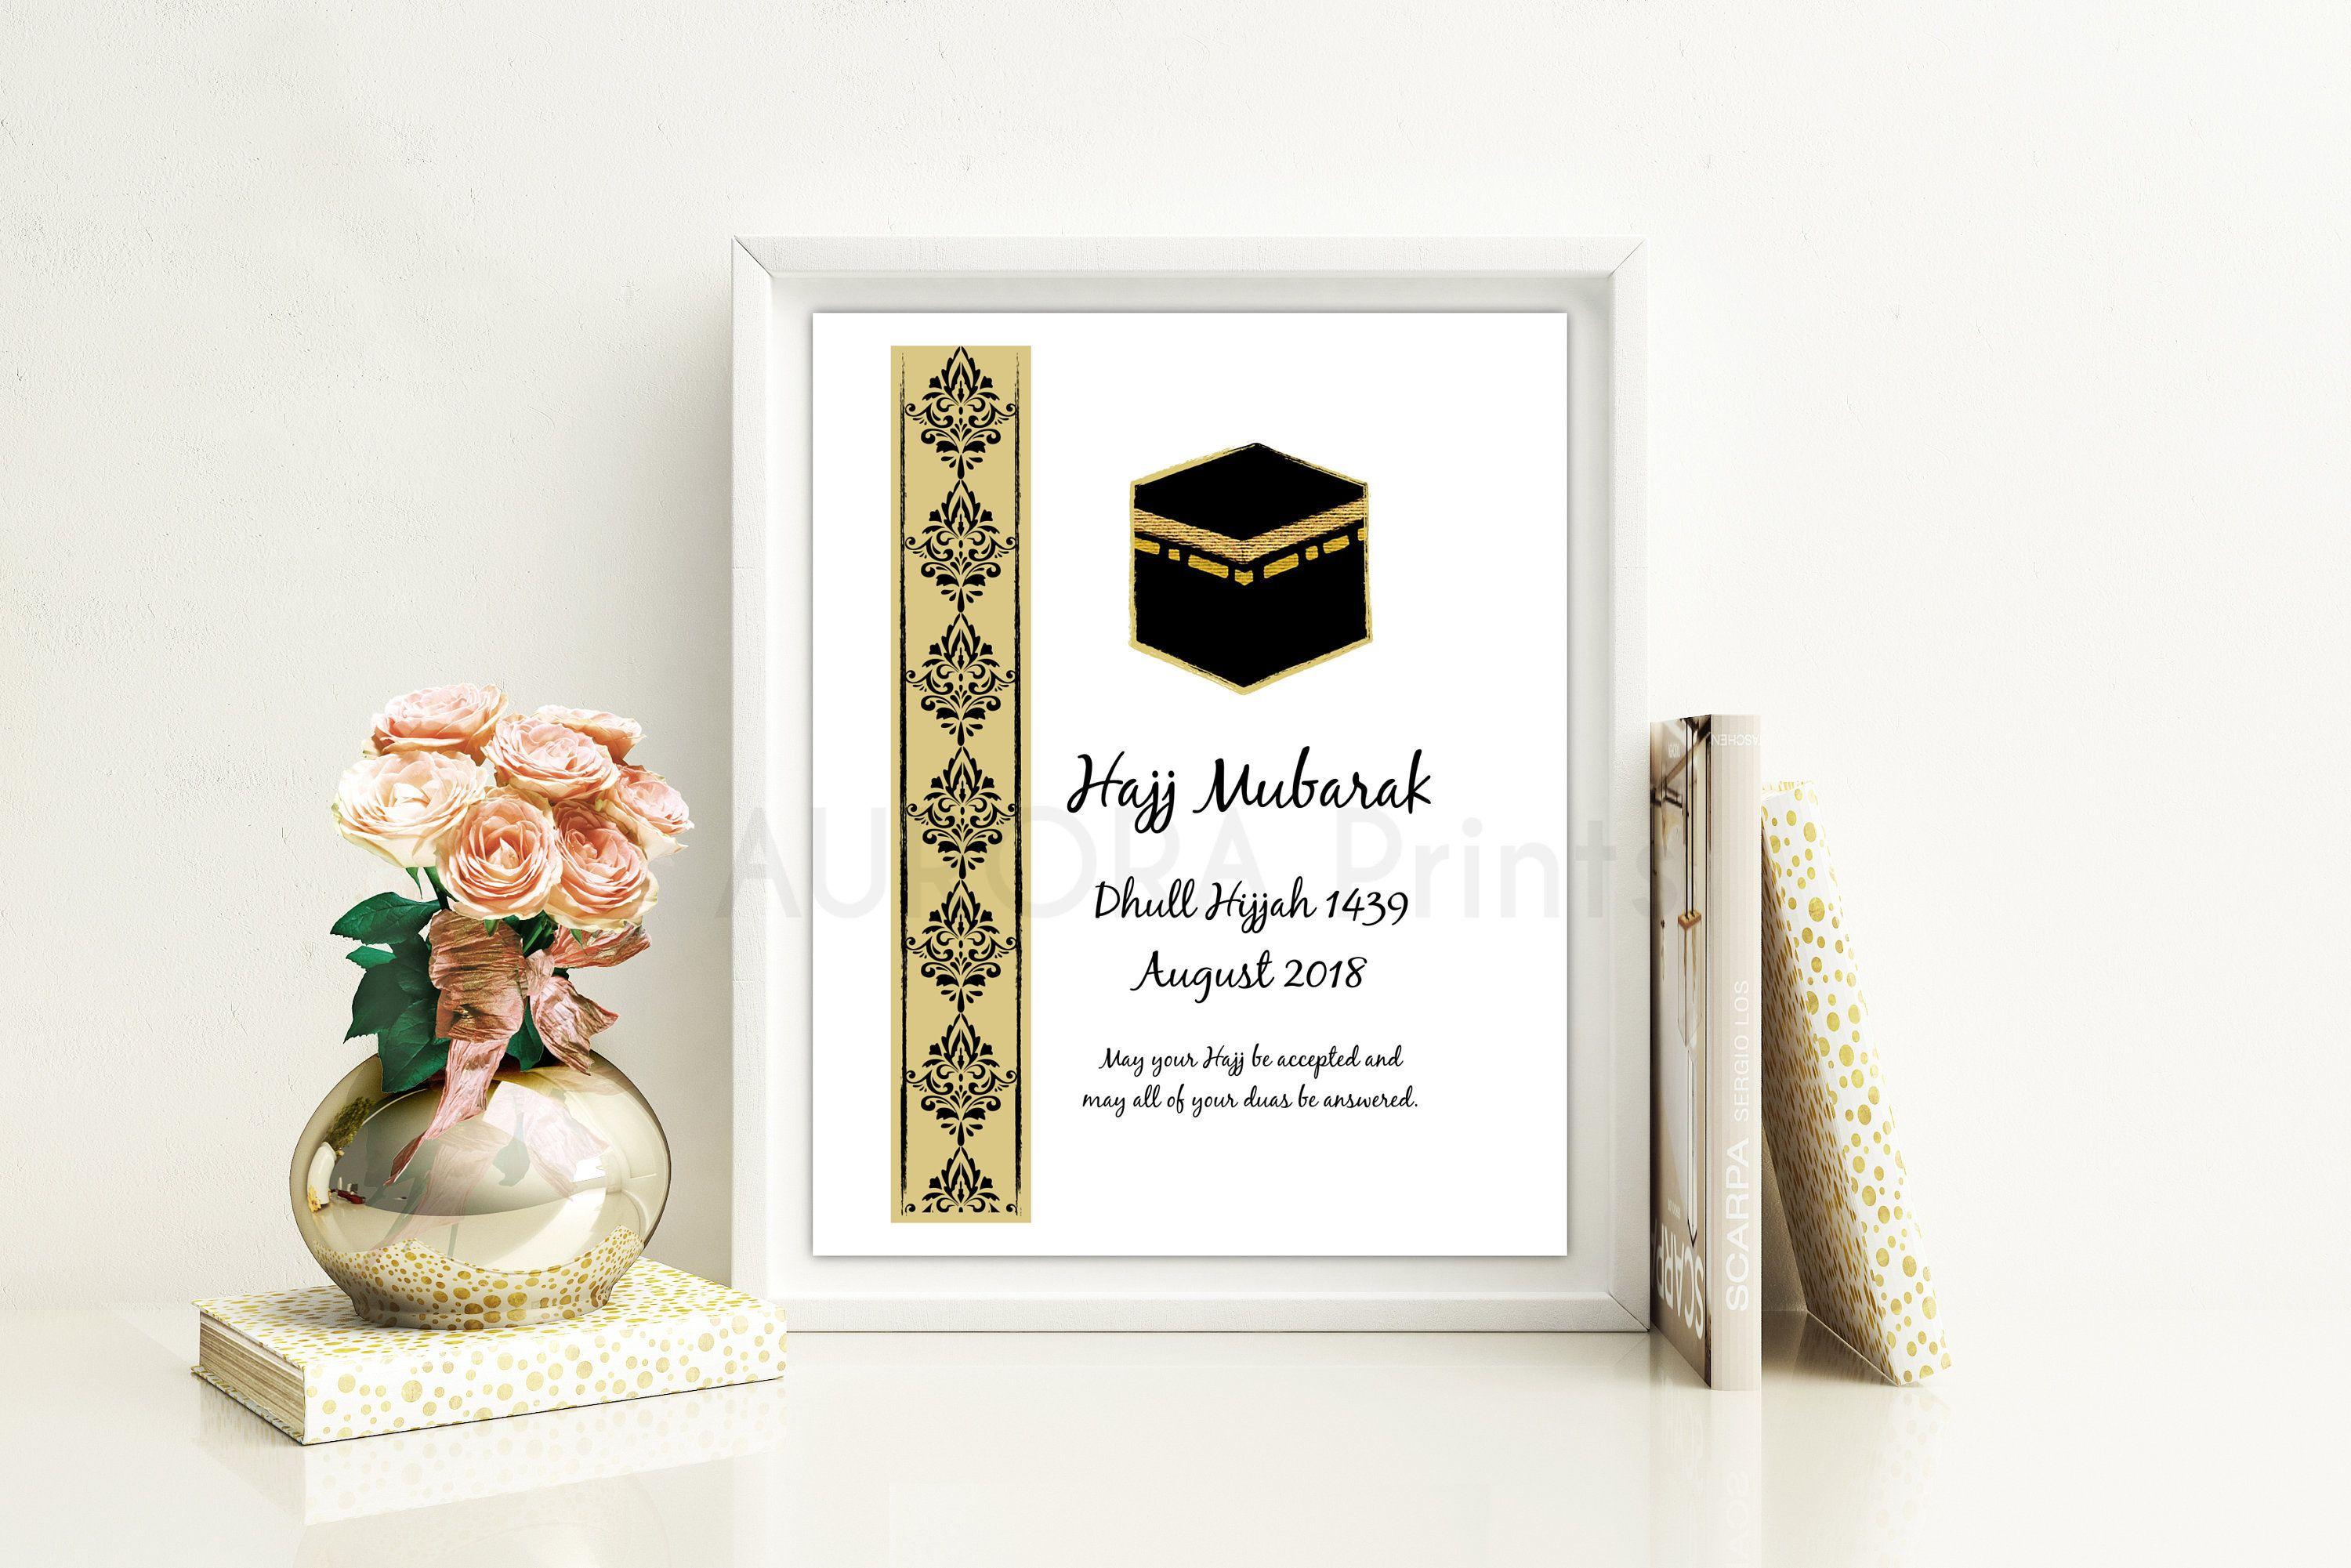 Wedding decorations muslim october 2018 PRINTABLE Hajj Mubarak Dhull Hijjah  August  Islamic